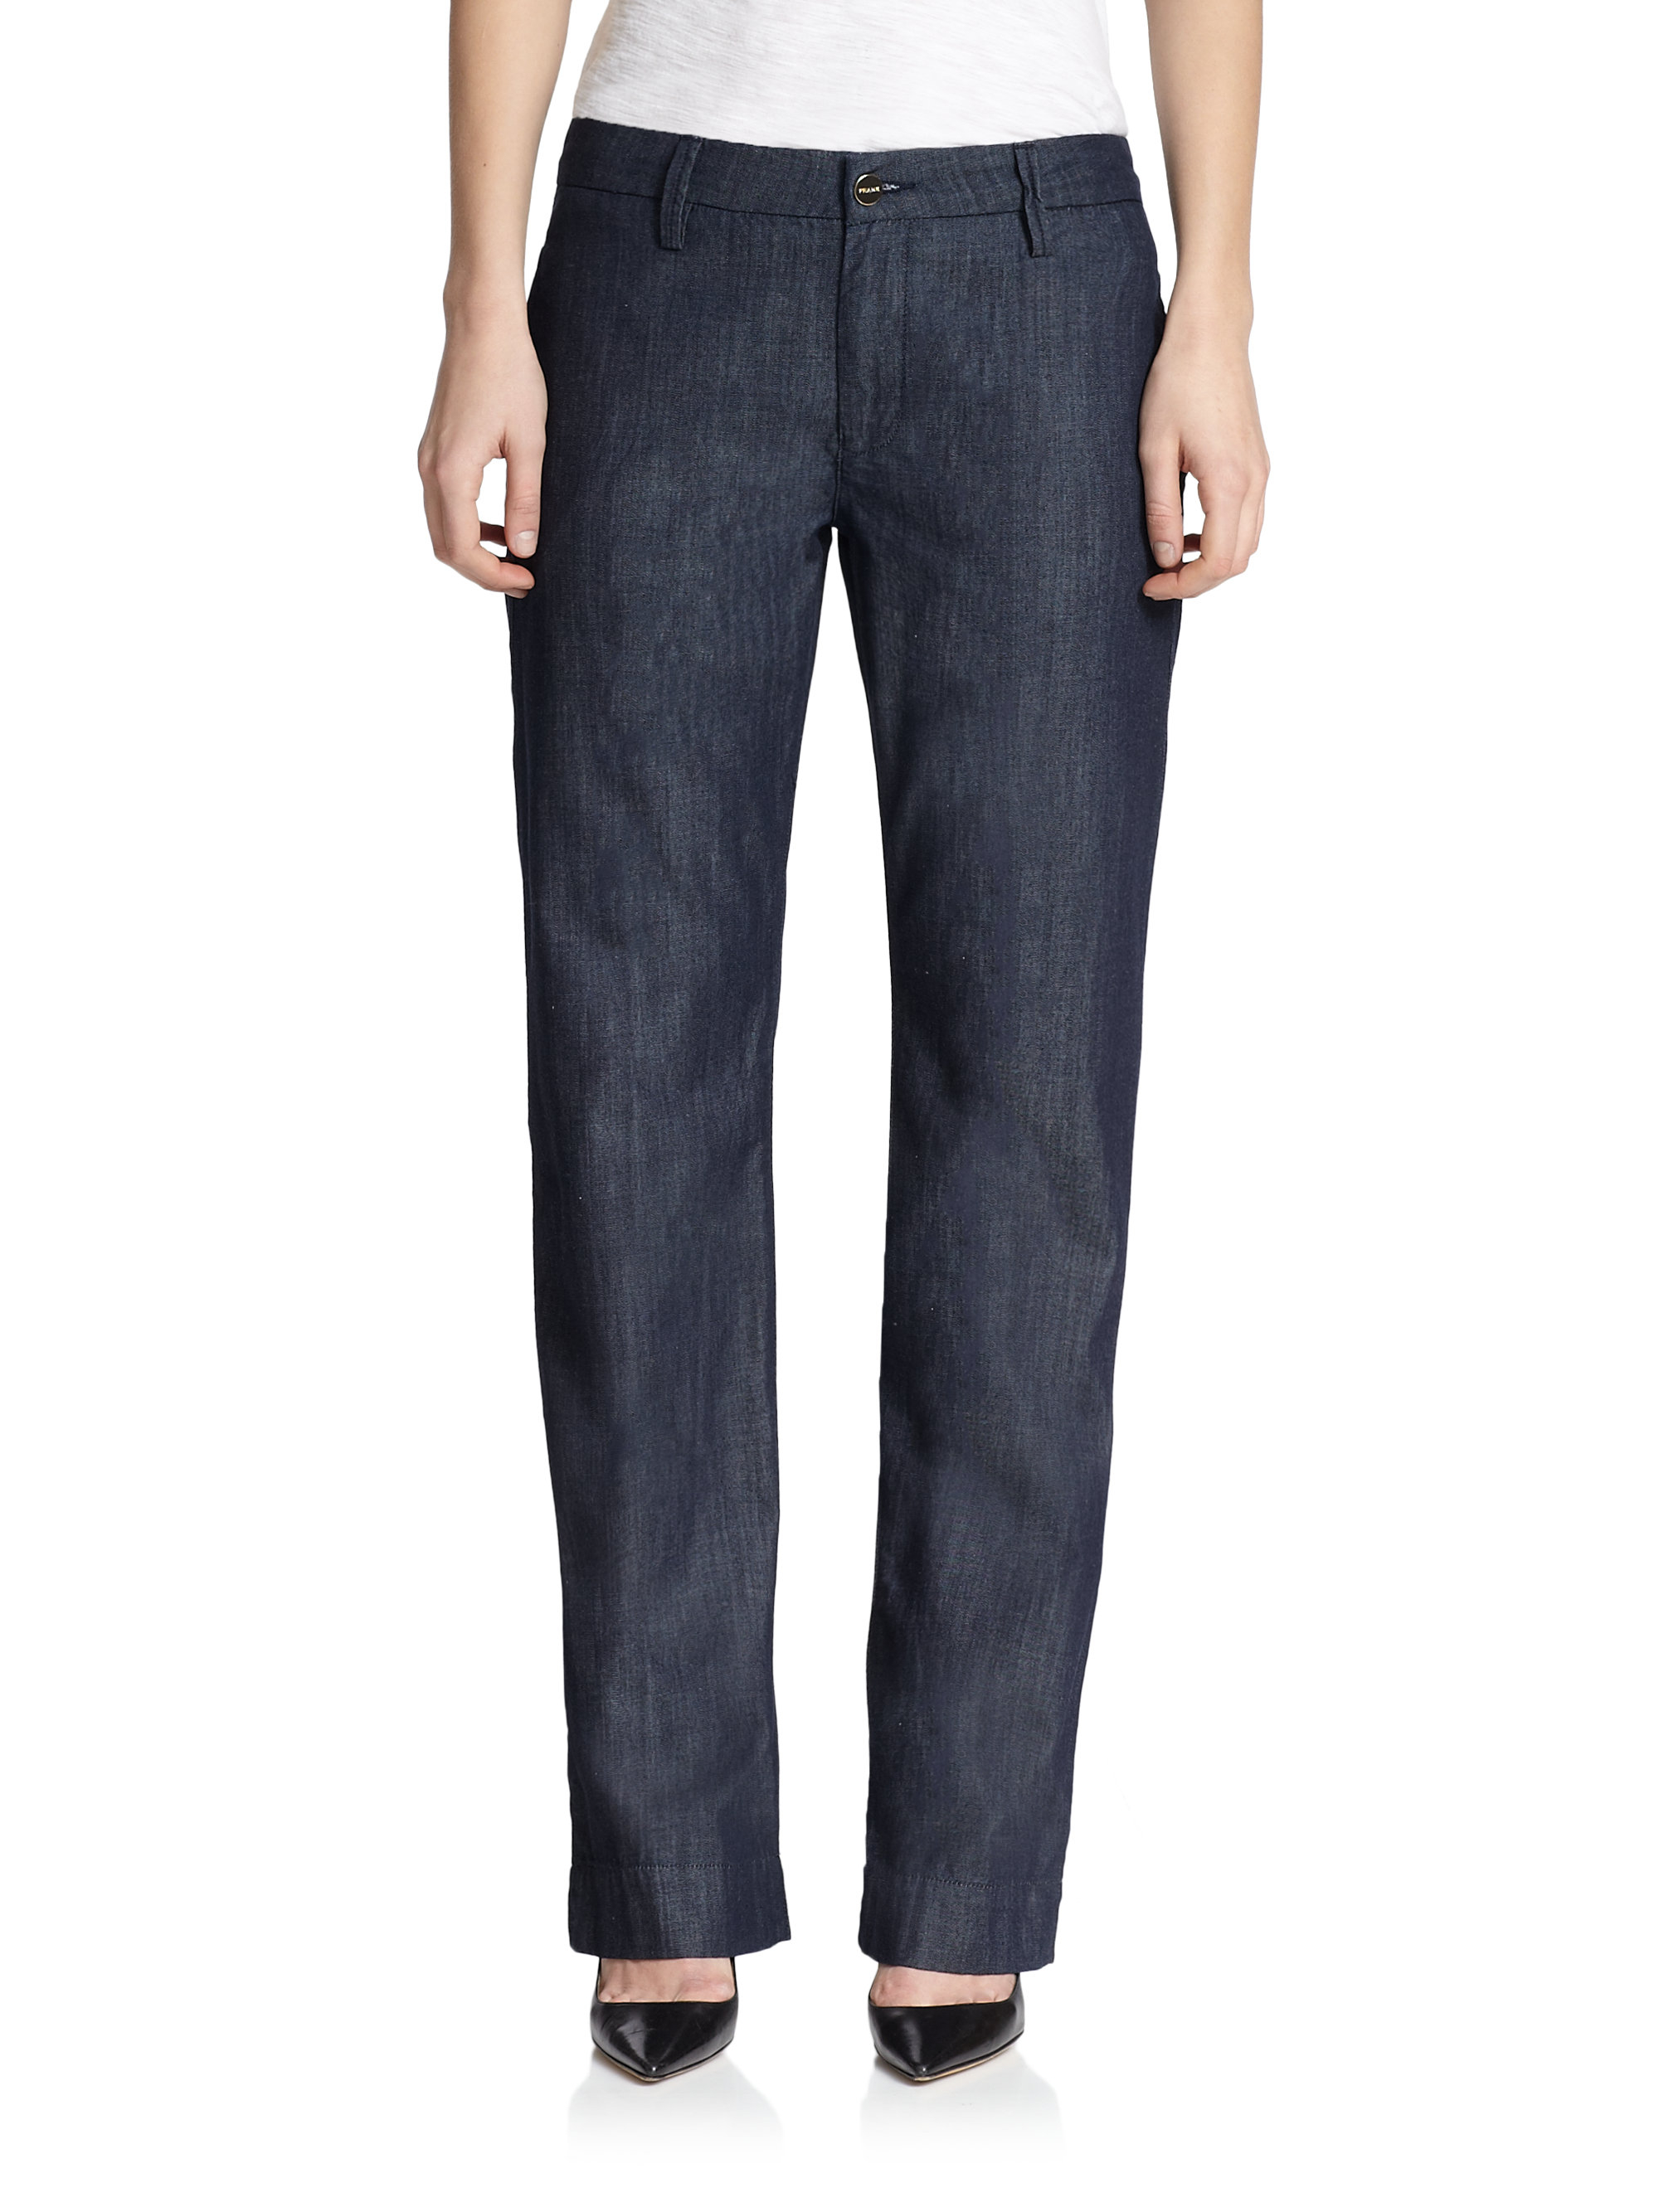 lyst frame le straight leg chambray pants in blue for men